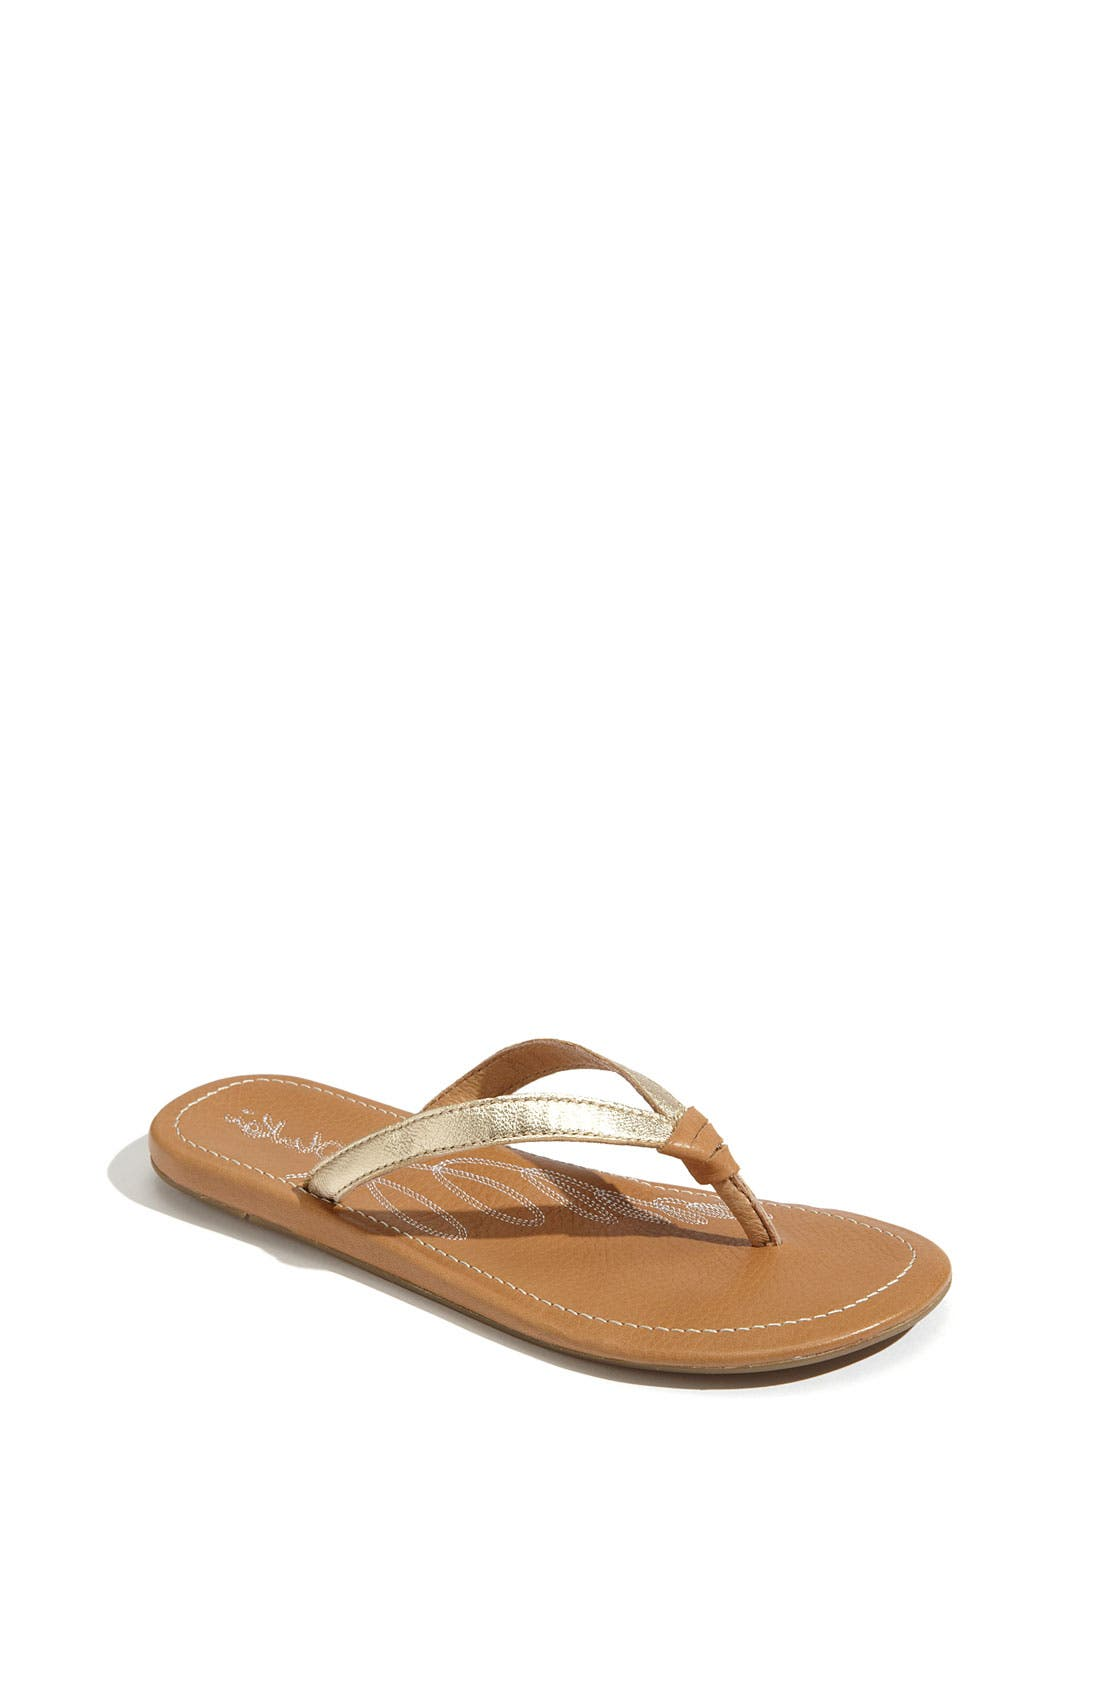 Main Image - OluKai 'Ulala' Flip Flop (Toddler, Little Kid & Big Kid)